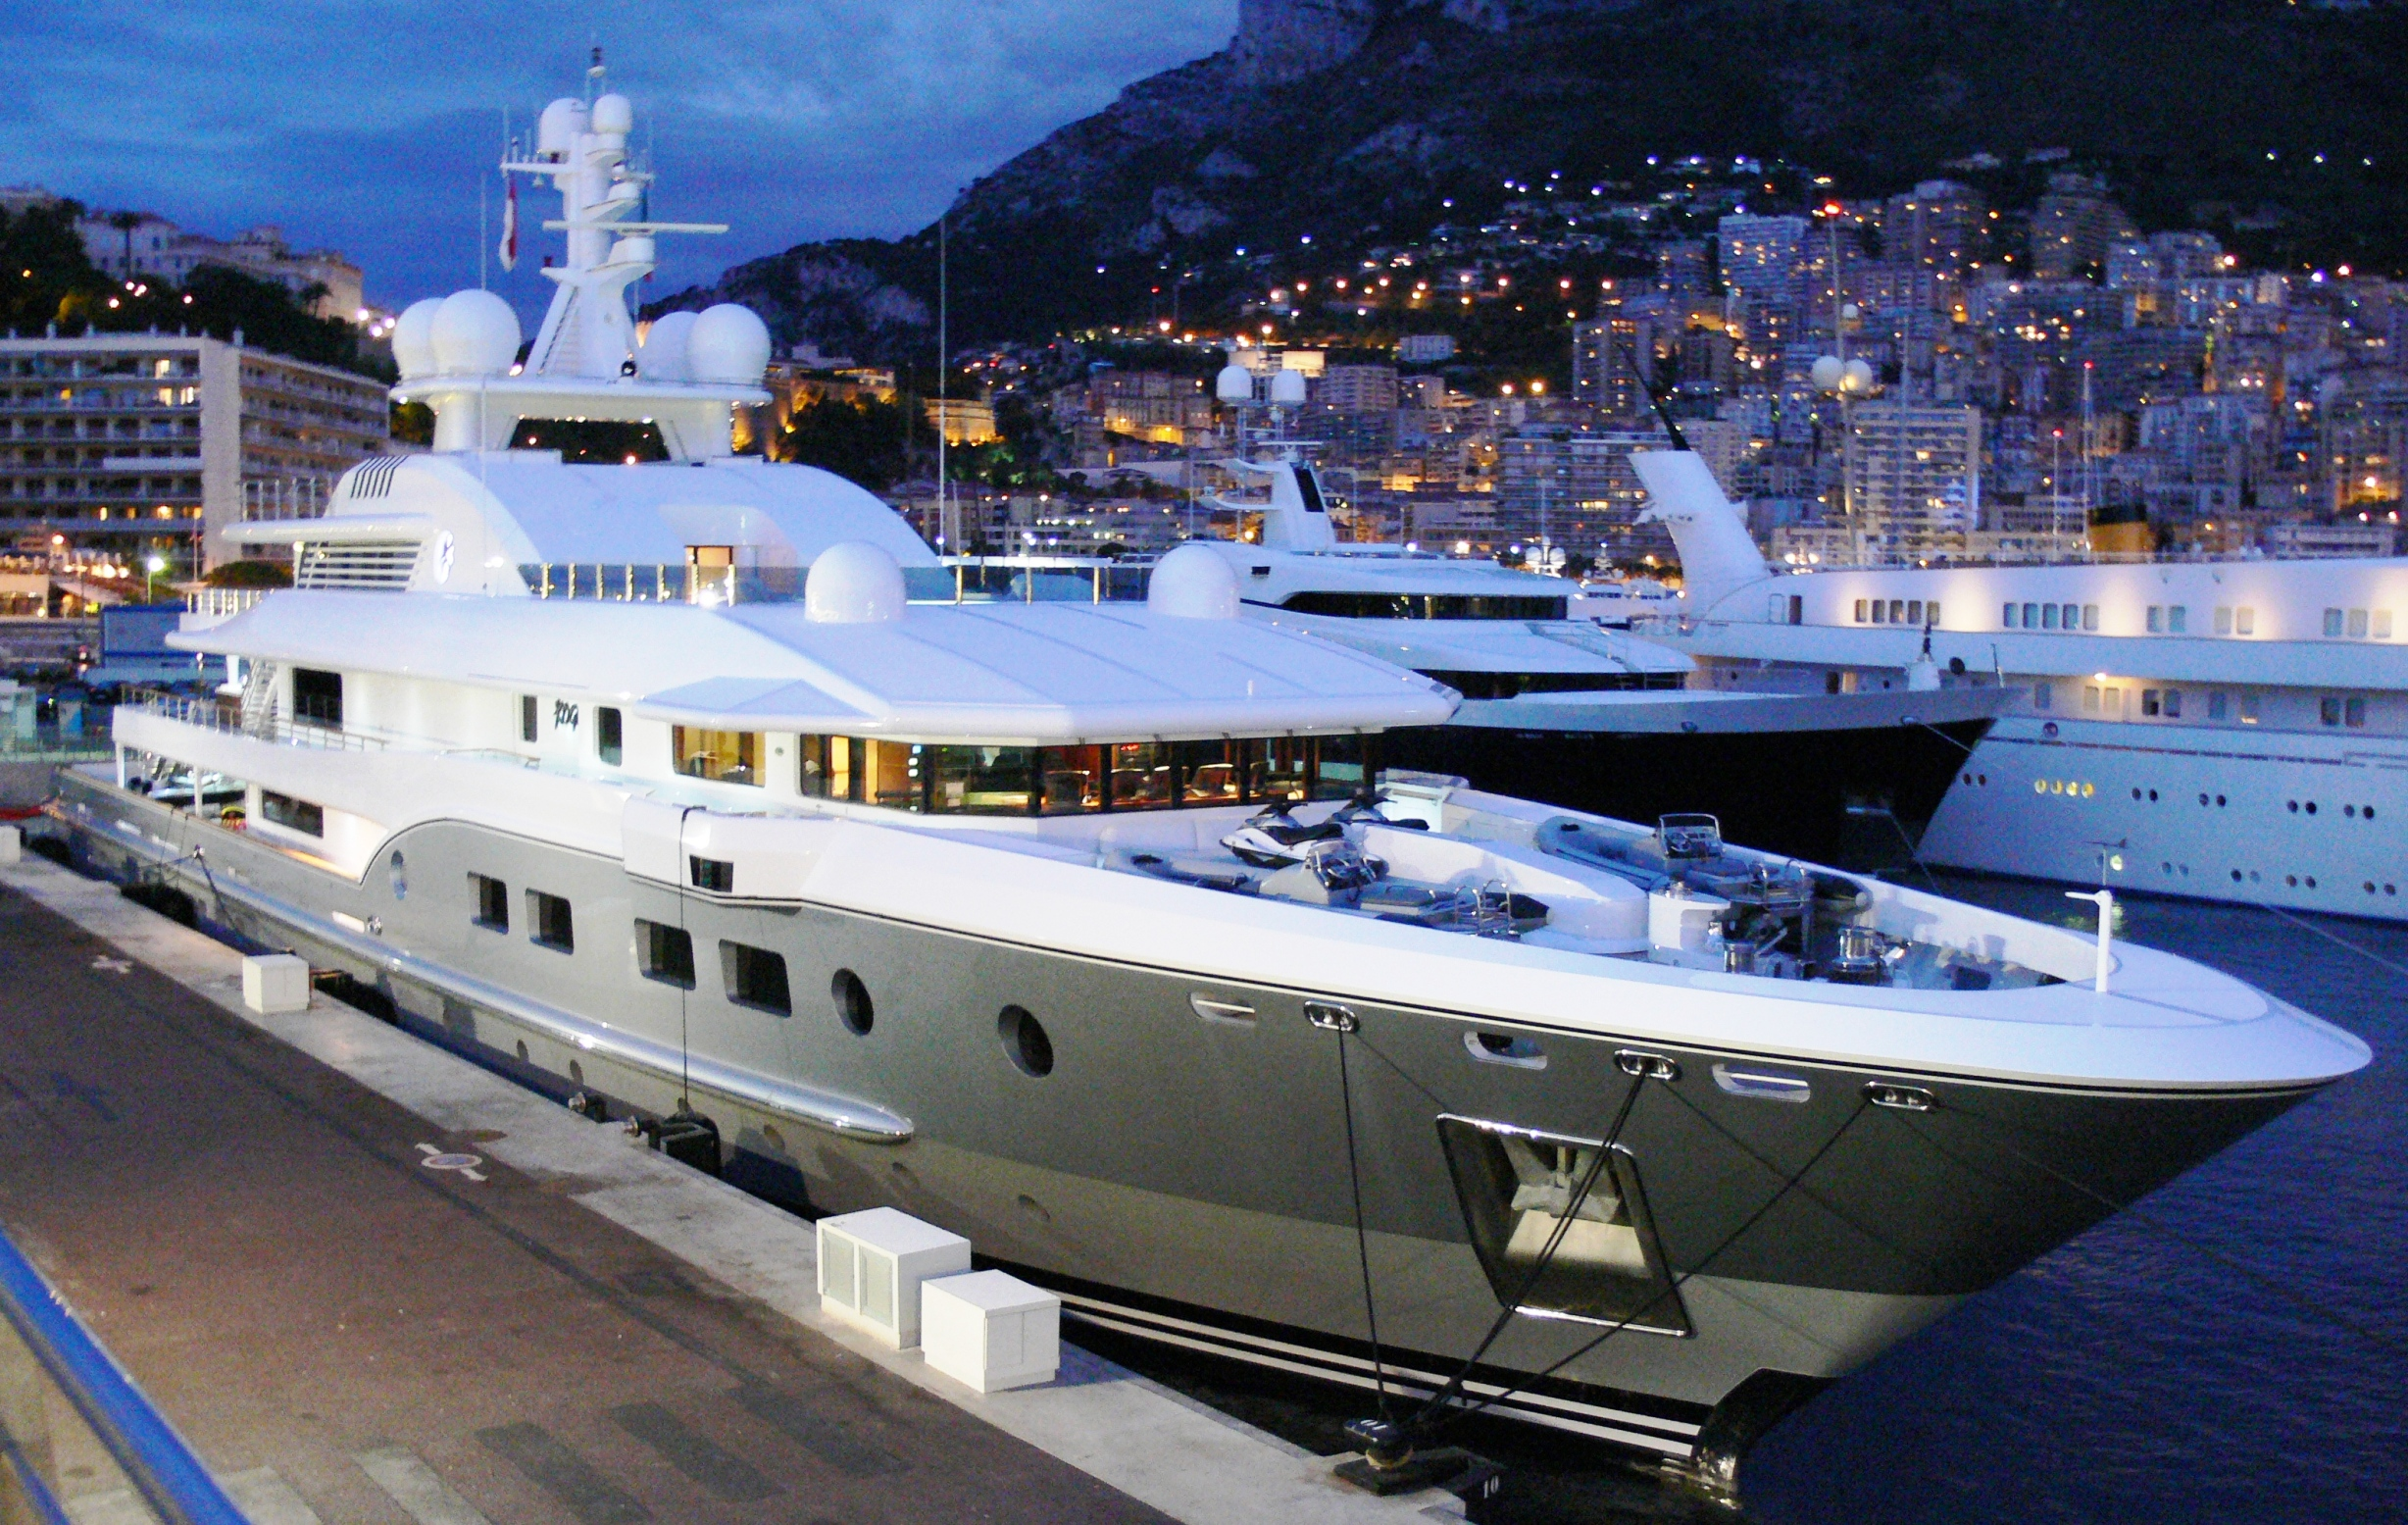 kogo motor yacht evening Description of a very expensive and a luxury yacht Kogo